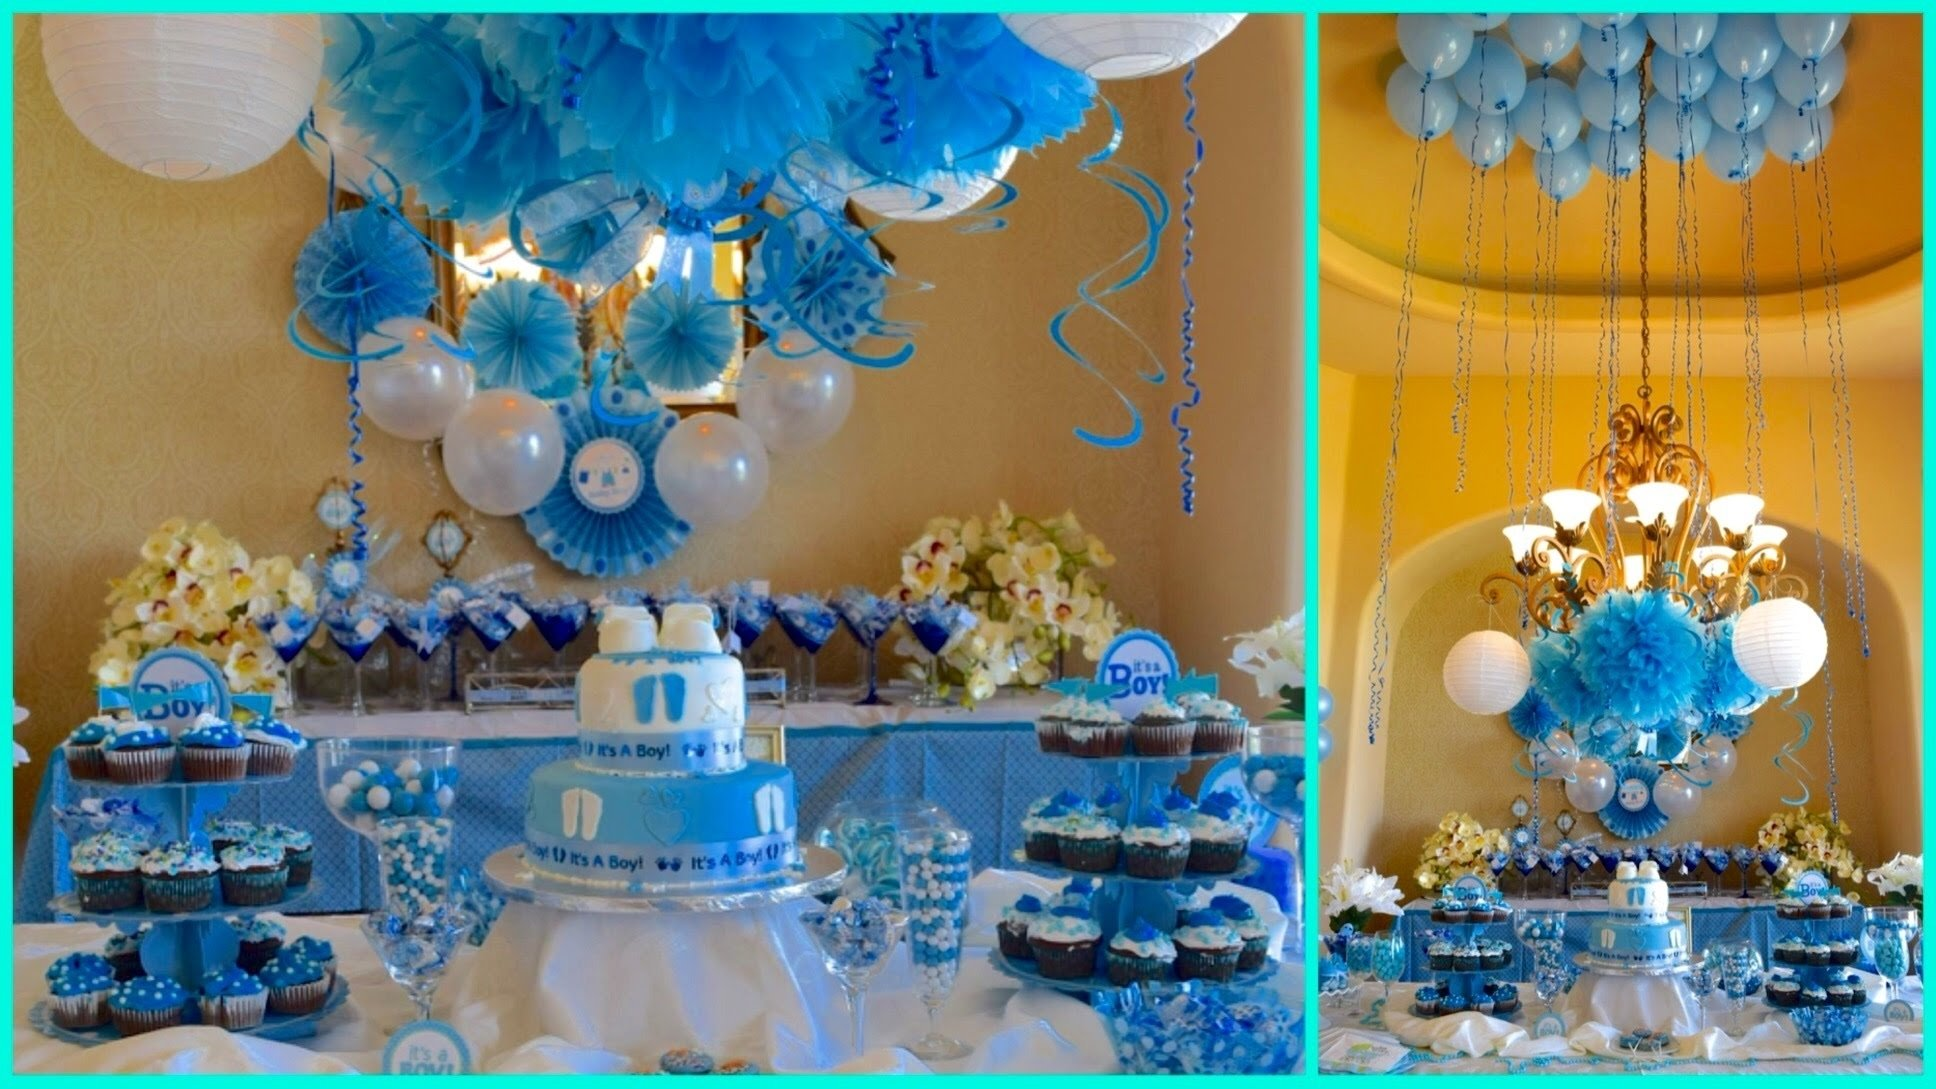 10 Unique Baby Boy Ideas For Baby Shower baby shower ideas for boy blue theme youtube 23 2021